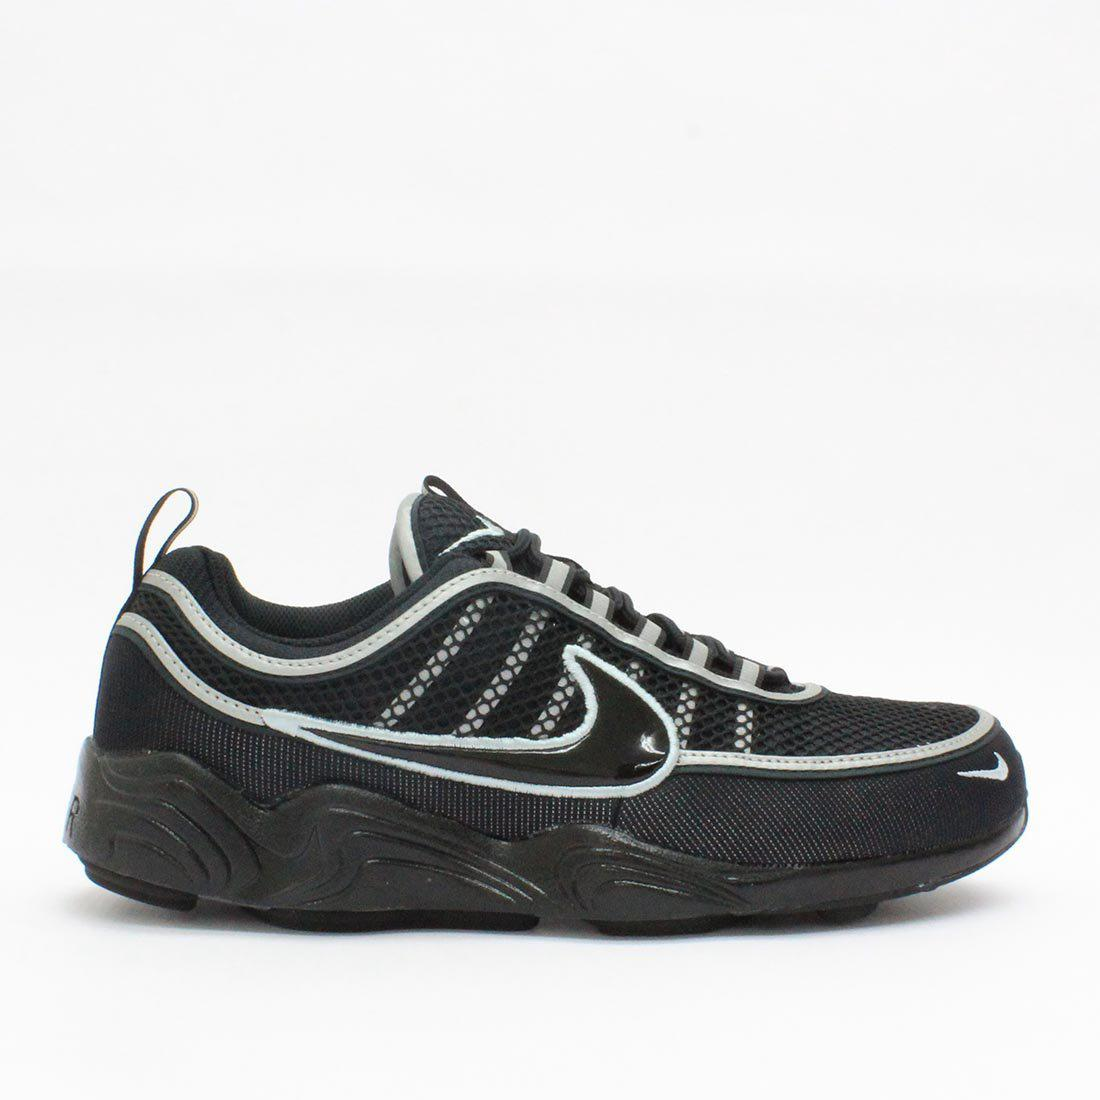 innovative design ce2a2 5d099 Lyst - Nike Trainers Nike Air Zoom Spiridon 16 Black 926955 008 in ...